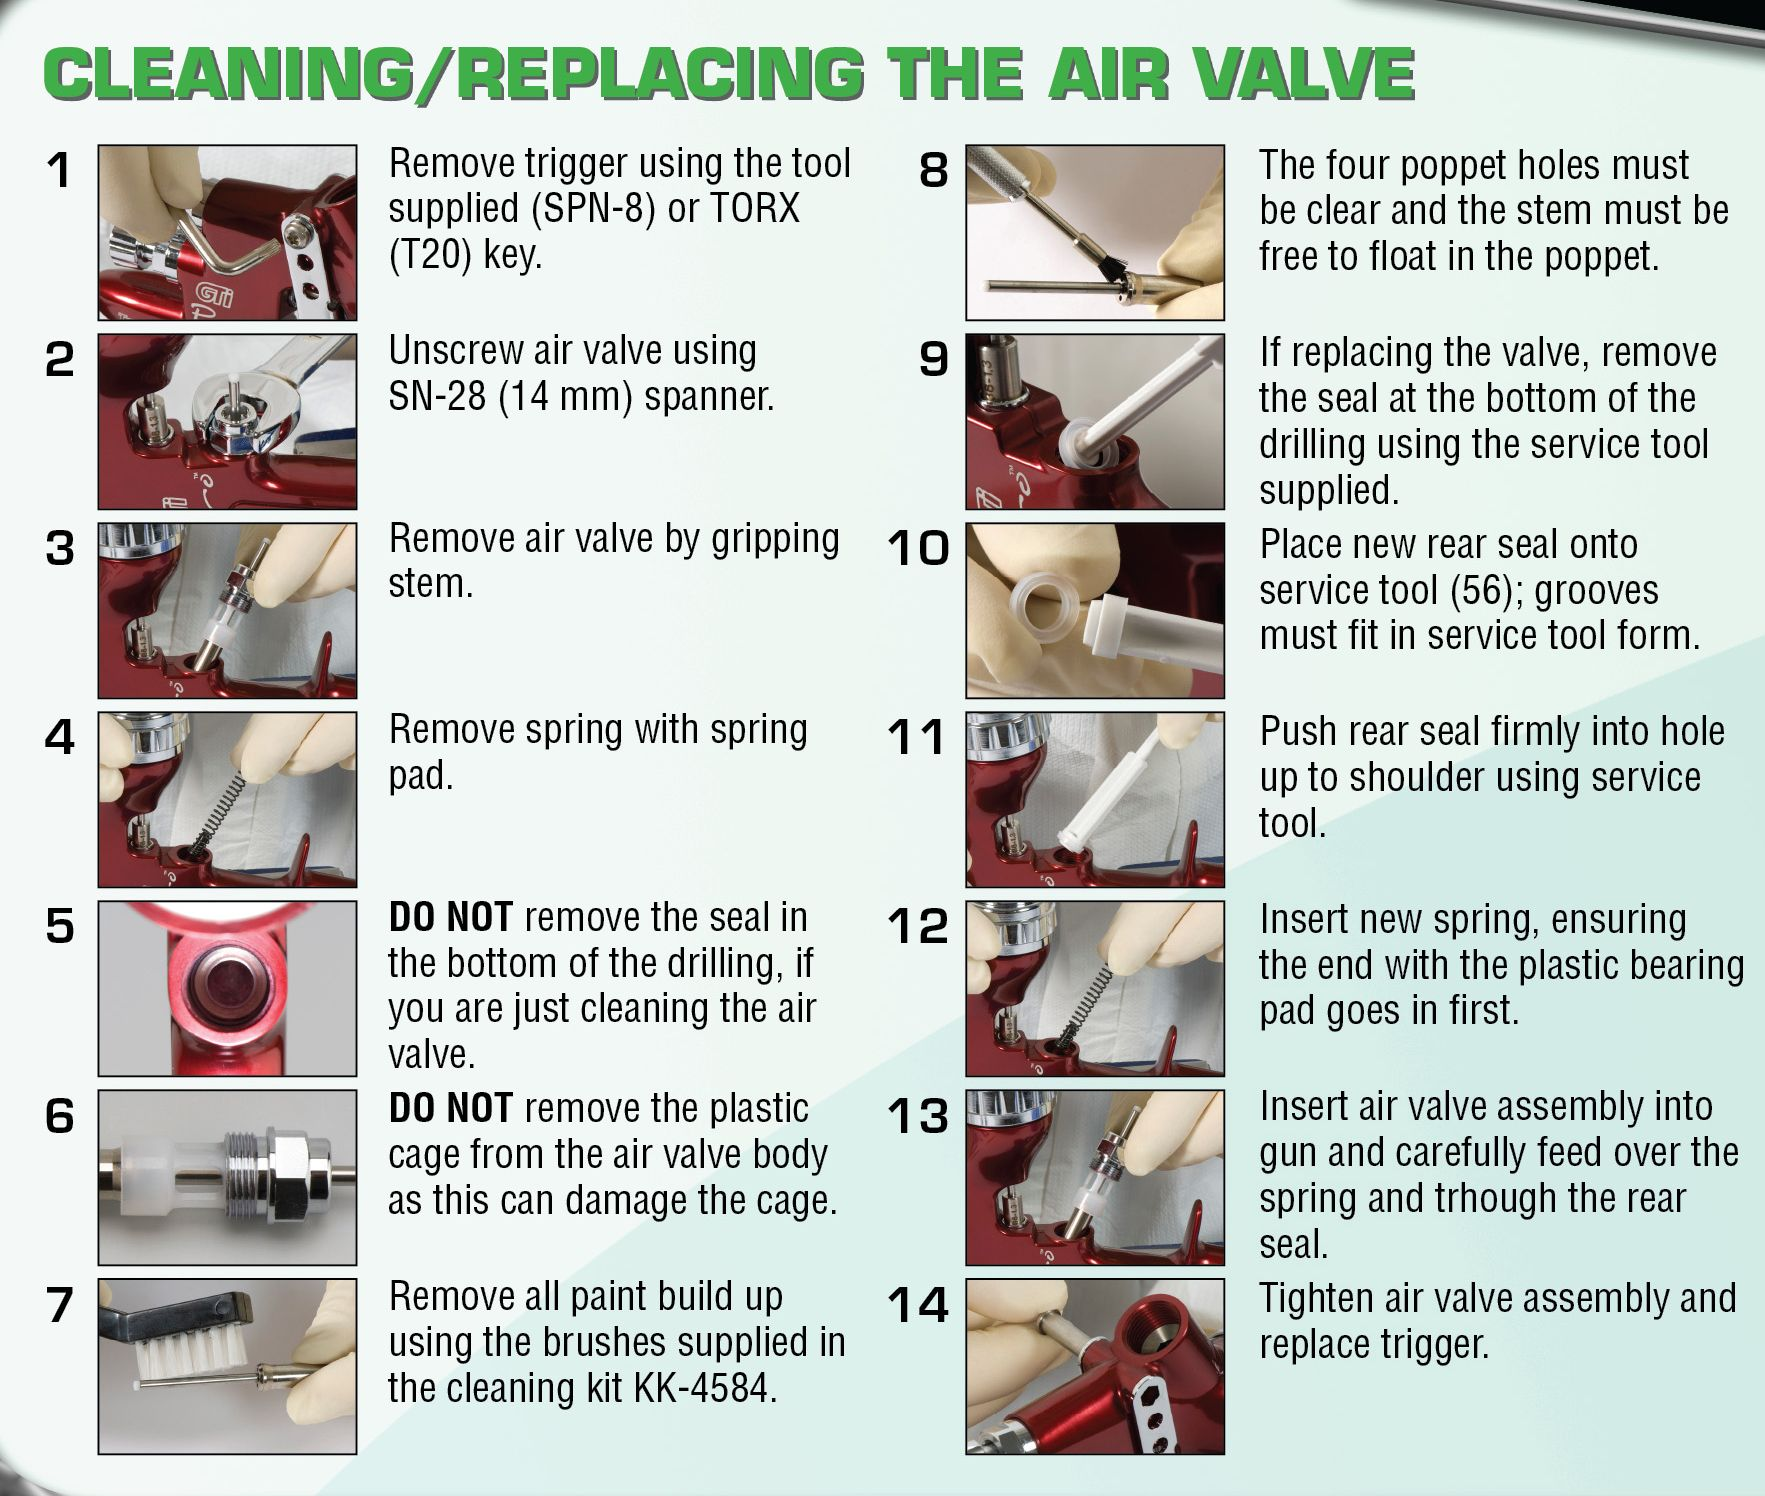 CleaningreplacingtheAirValve